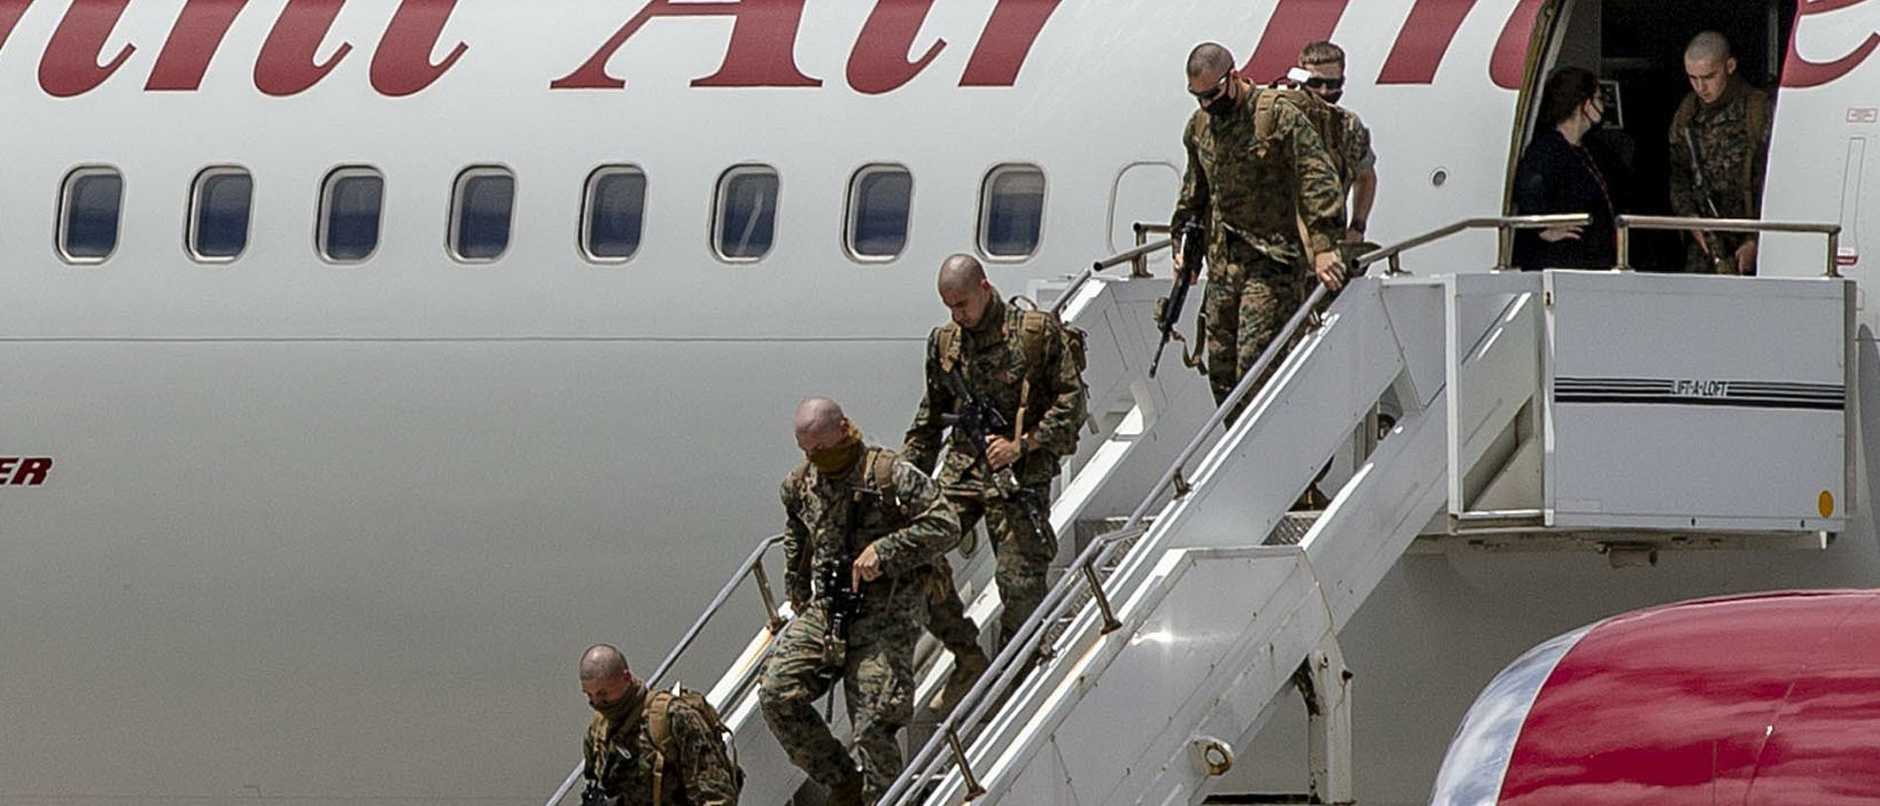 Marines in route to Darwin arrive in Okinawa for first of two 14-day quarantine periods